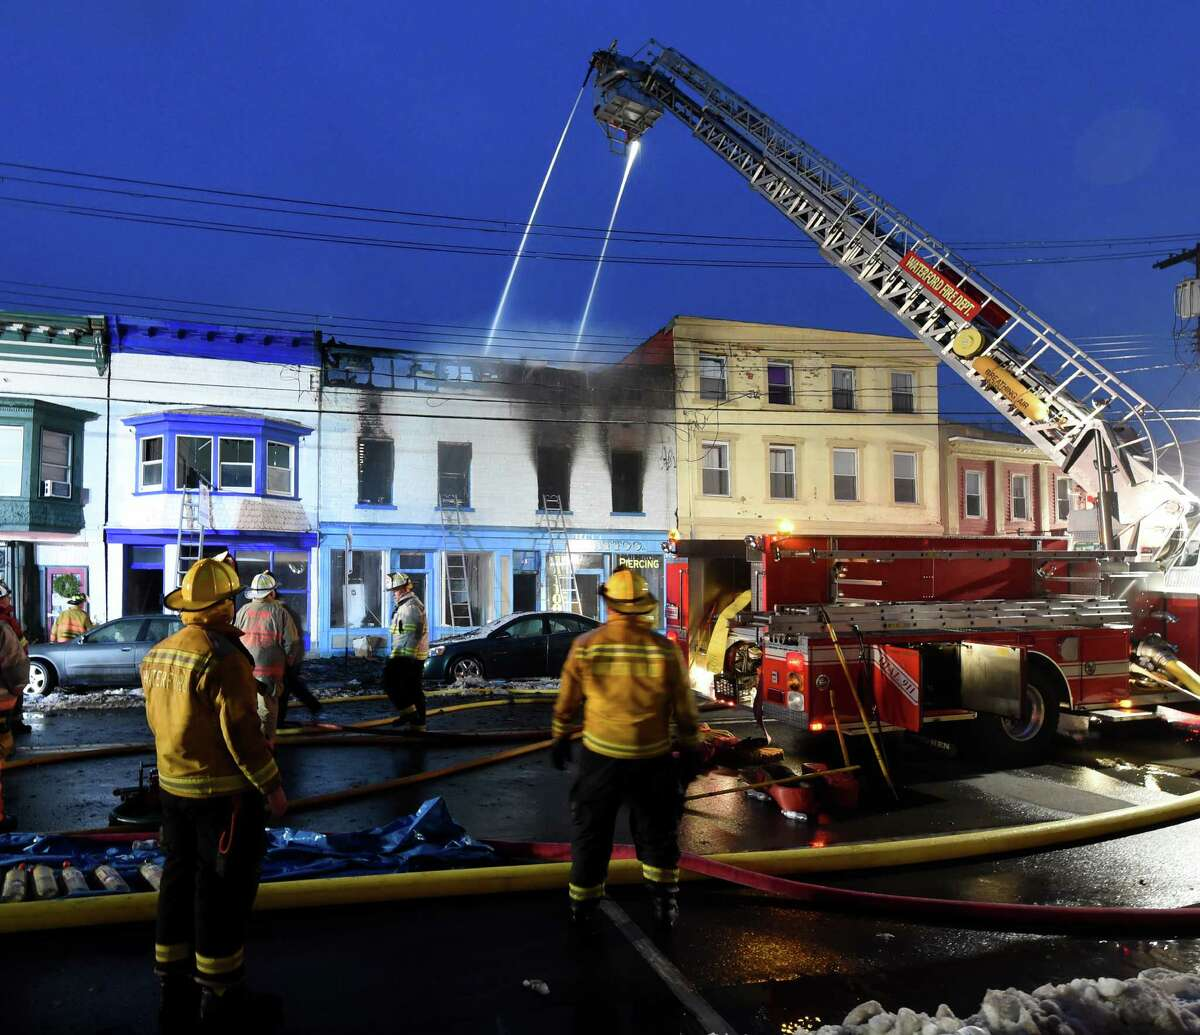 Firefighters from two counties work on a mutual aid fire which started in 33 Broad St. early Wednesday Dec. 30, 2015 in Waterford, N.Y. (Skip Dickstein/Times Union)